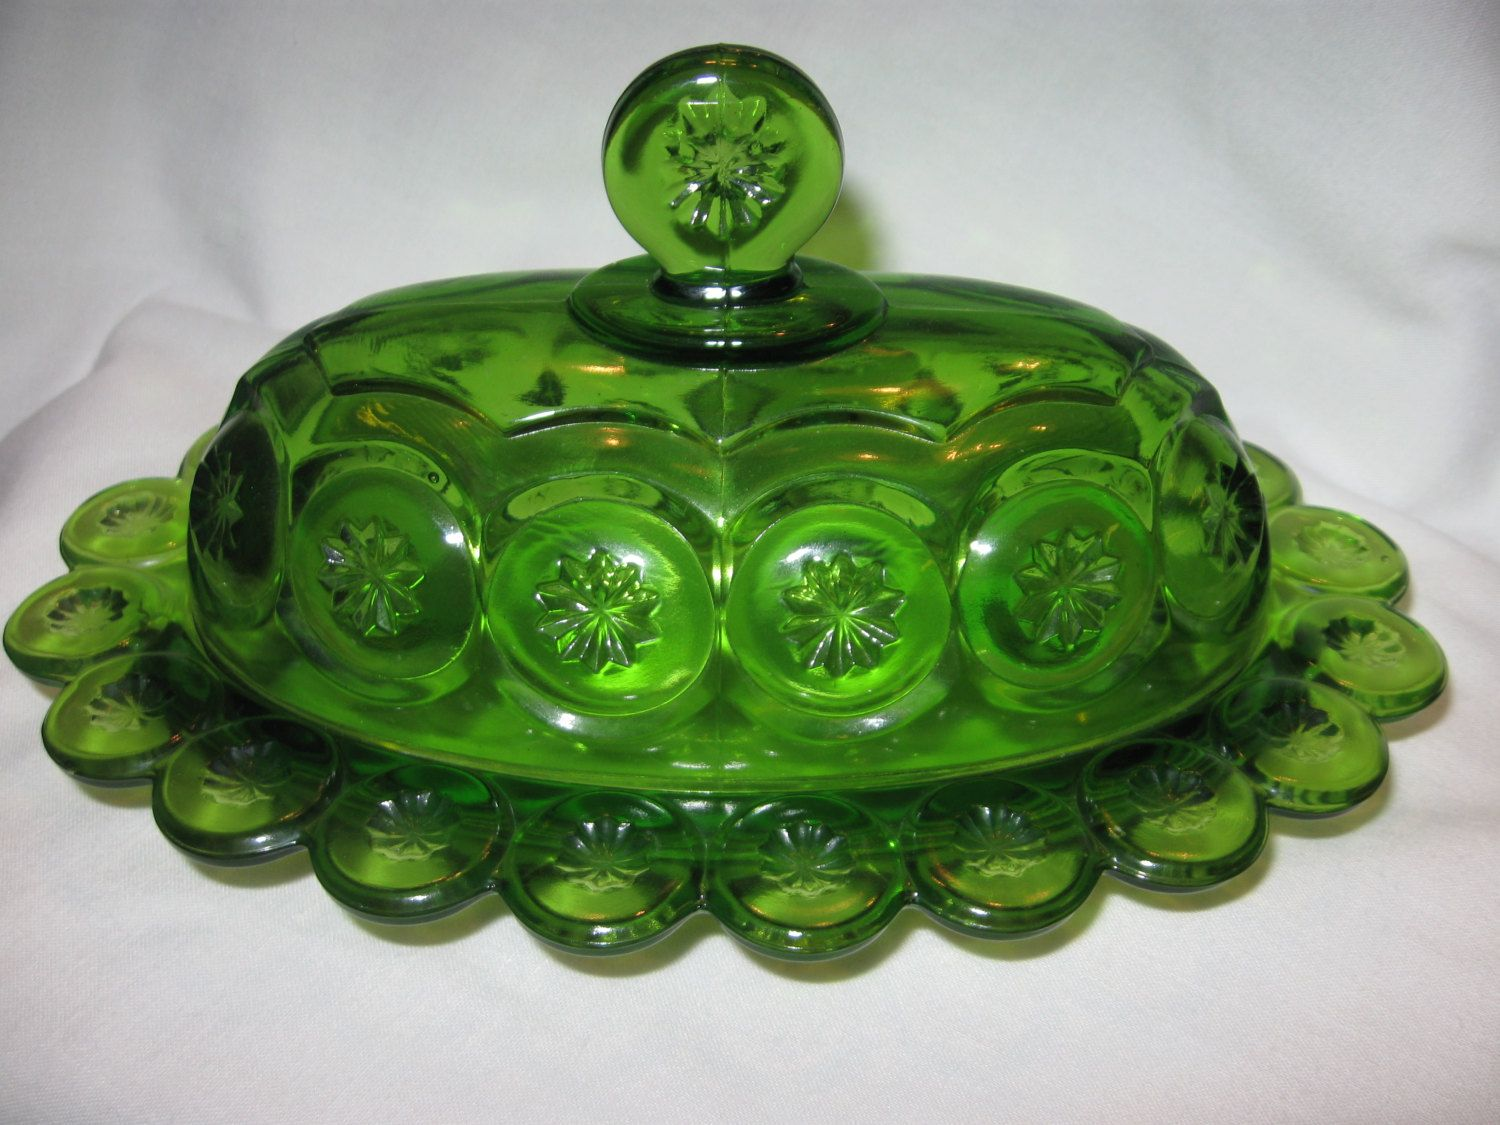 Vintage L E Smith Green Glass Stars Moon Butter Dish Plate Domed Cover With Lid Glass Stars Green Glass Stars And Moon